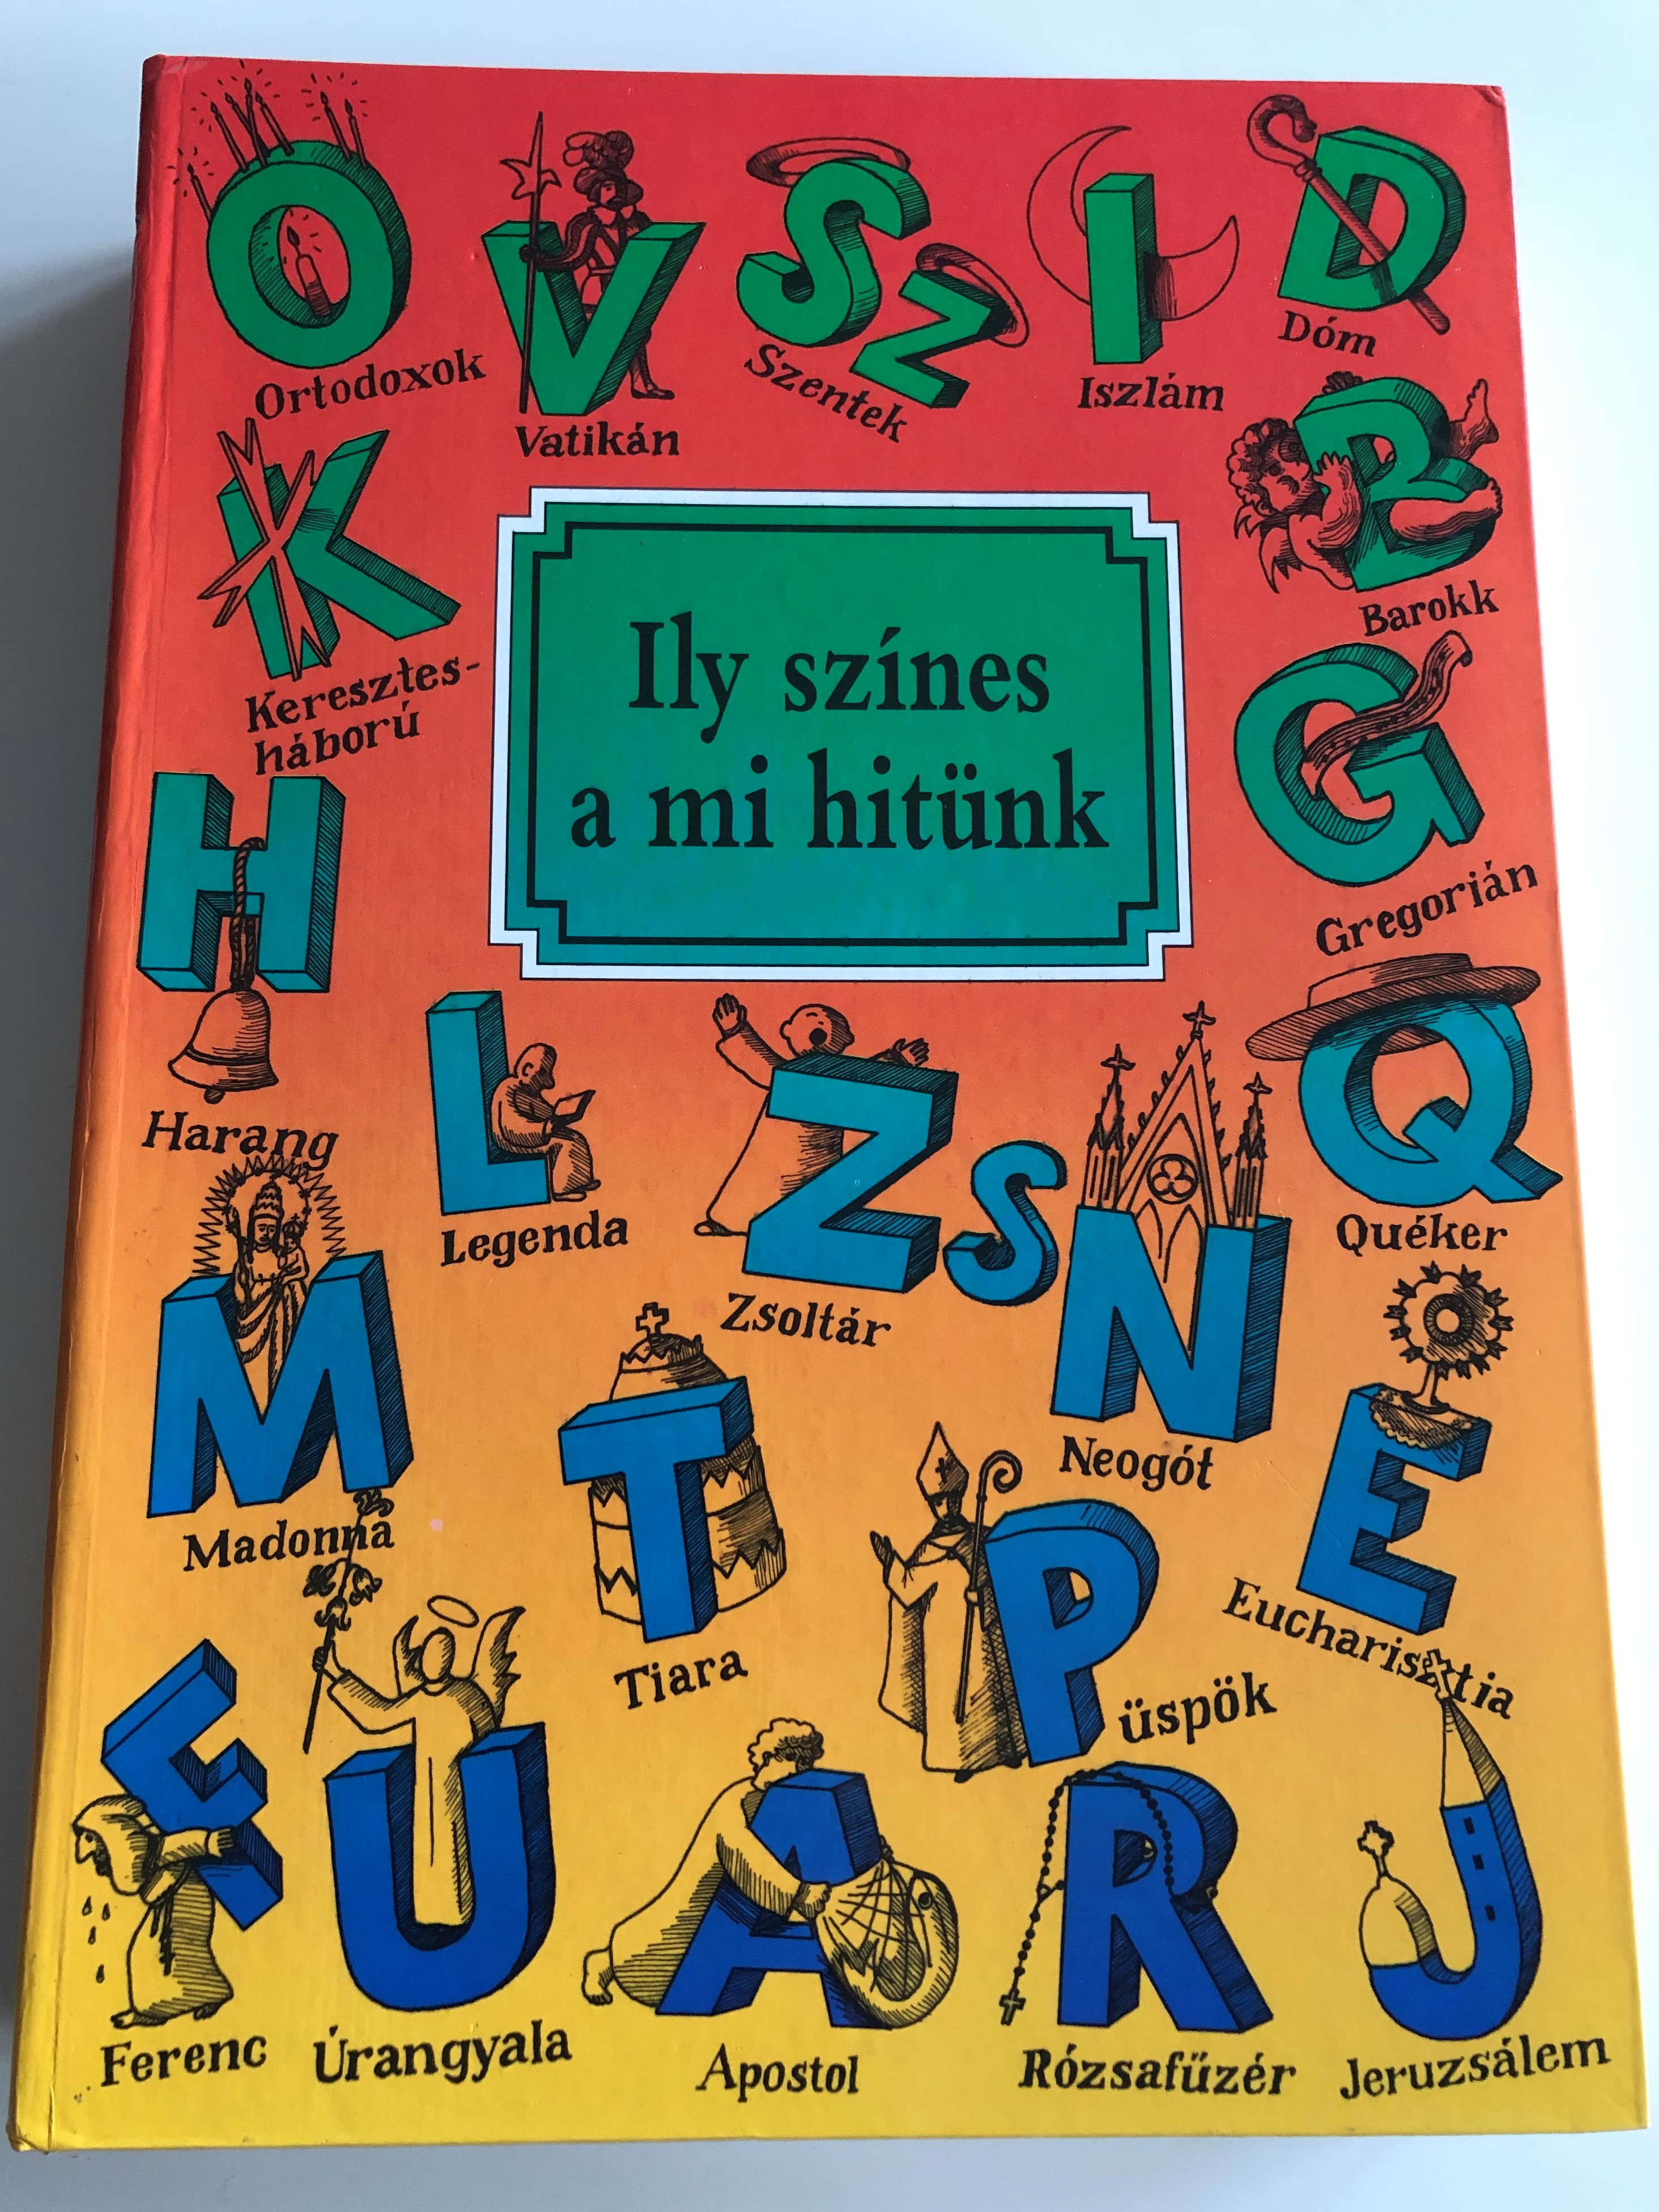 ily-sz-nes-a-mi-hit-nk-by-alexander-ziegert-hungarian-edition-of-so-bunt-ist-unser-glaube-1.jpg